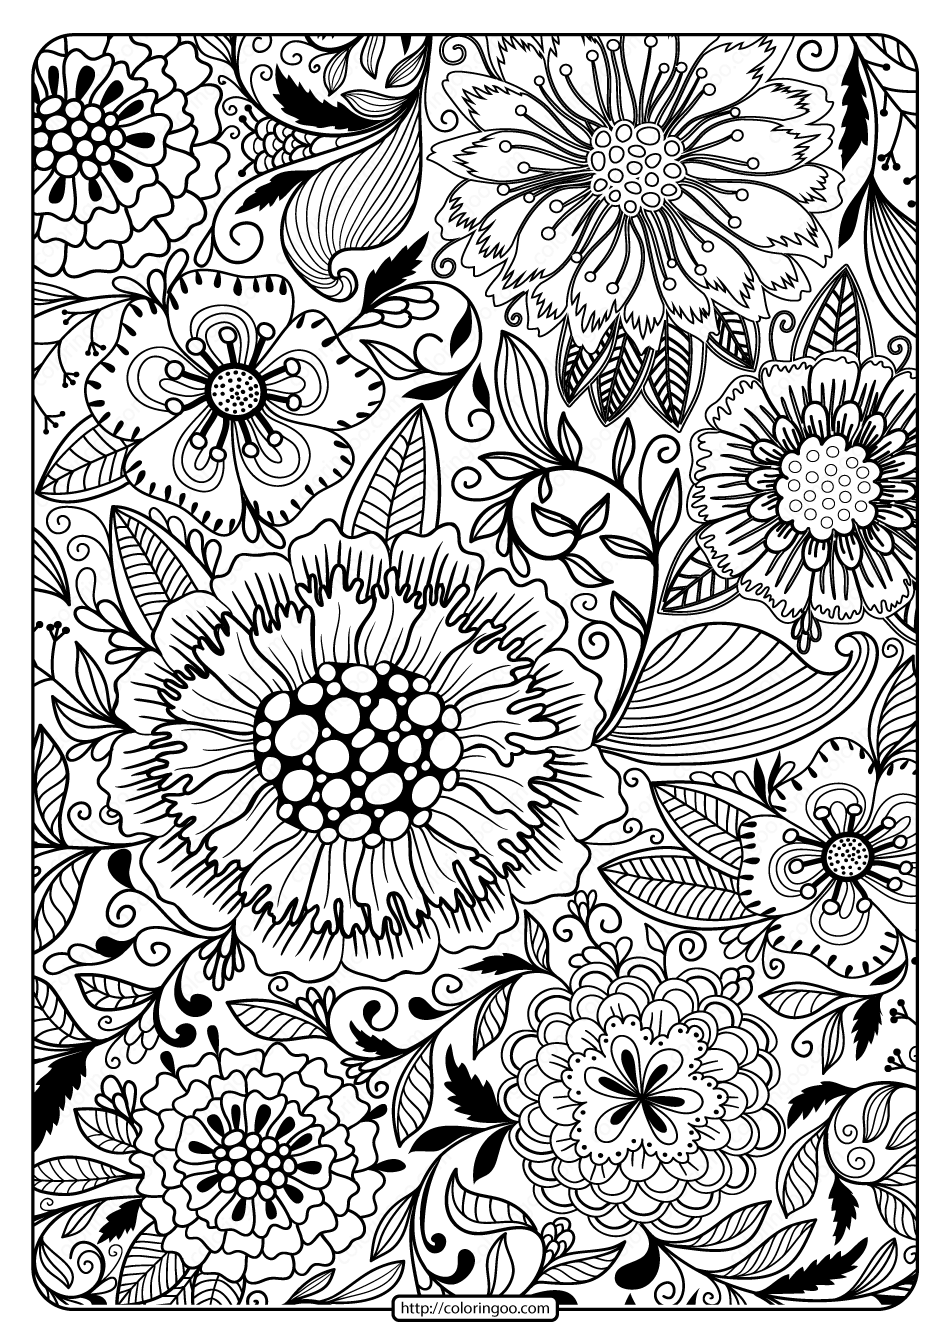 coloring pages : Free Printable Mandalas For Kids Lovely Unique ... | 1344x950